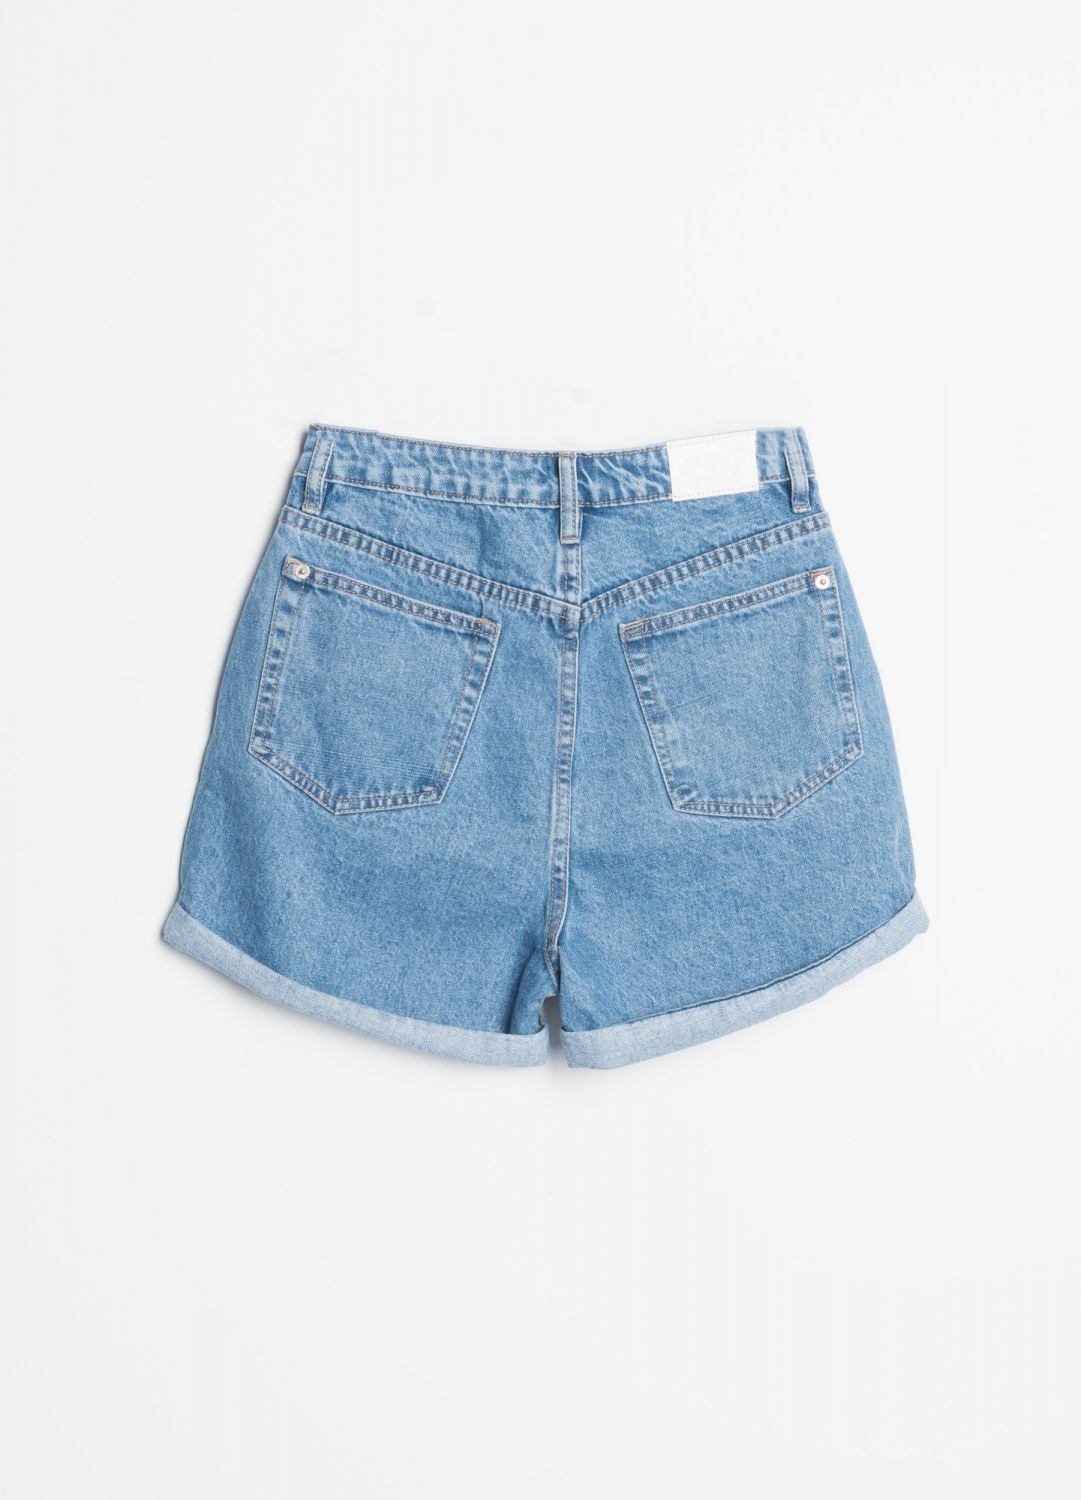 MOM FIT SHORTS JEANS